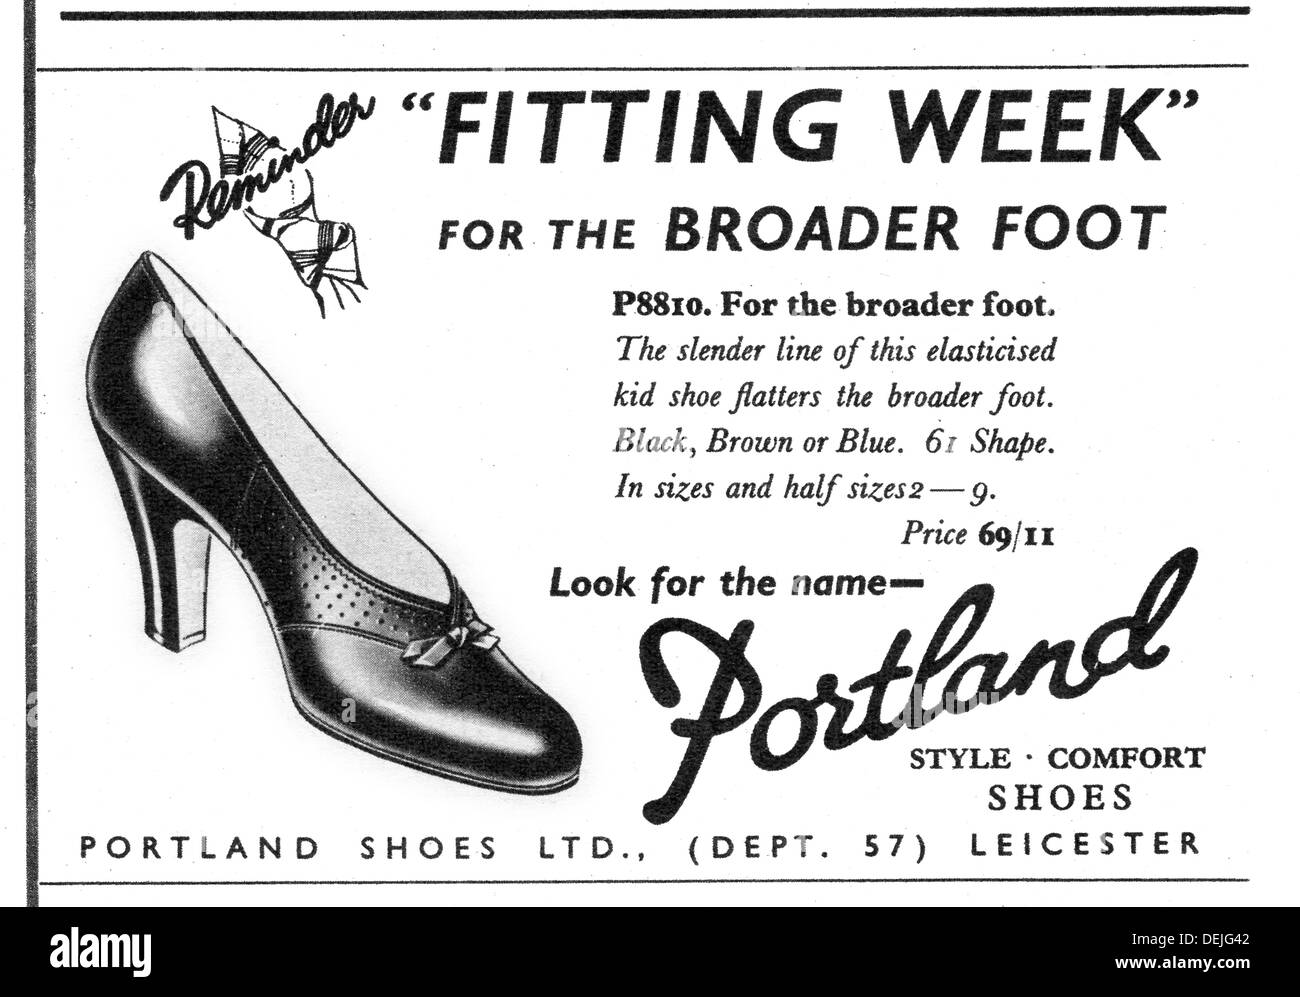 advert for Portland women's shoes in 1957 - Stock Image